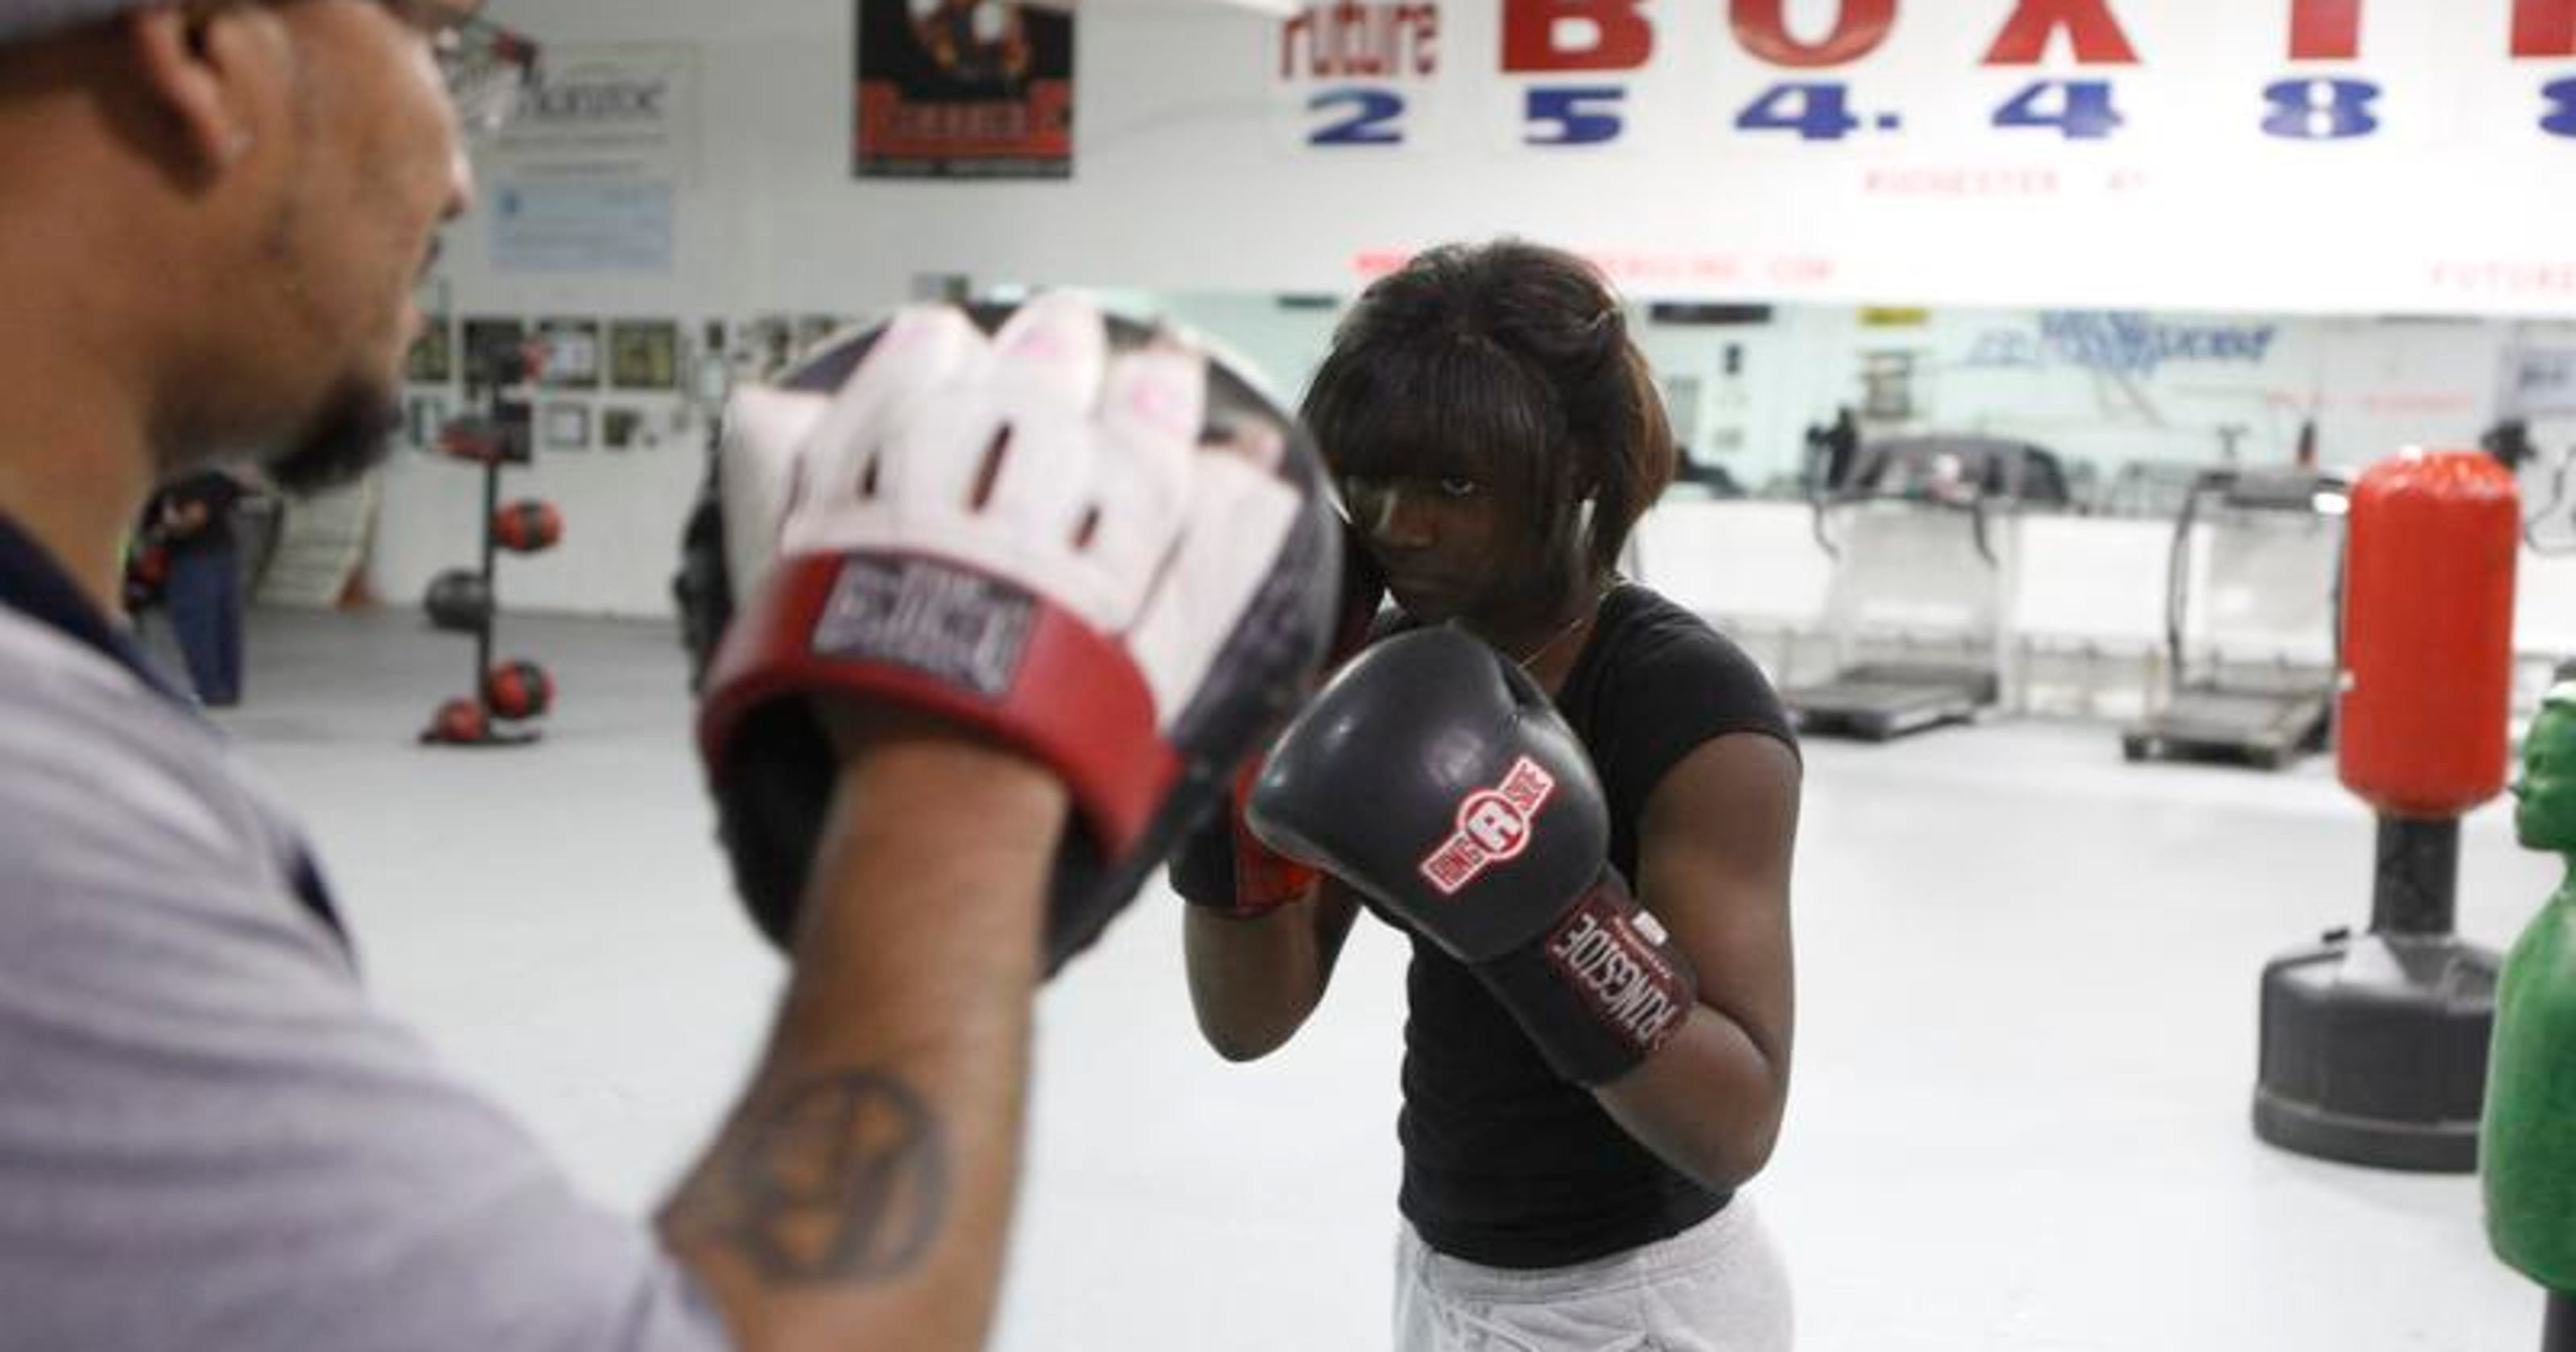 Kids Fight For Their Dreams At Future Boxing Club